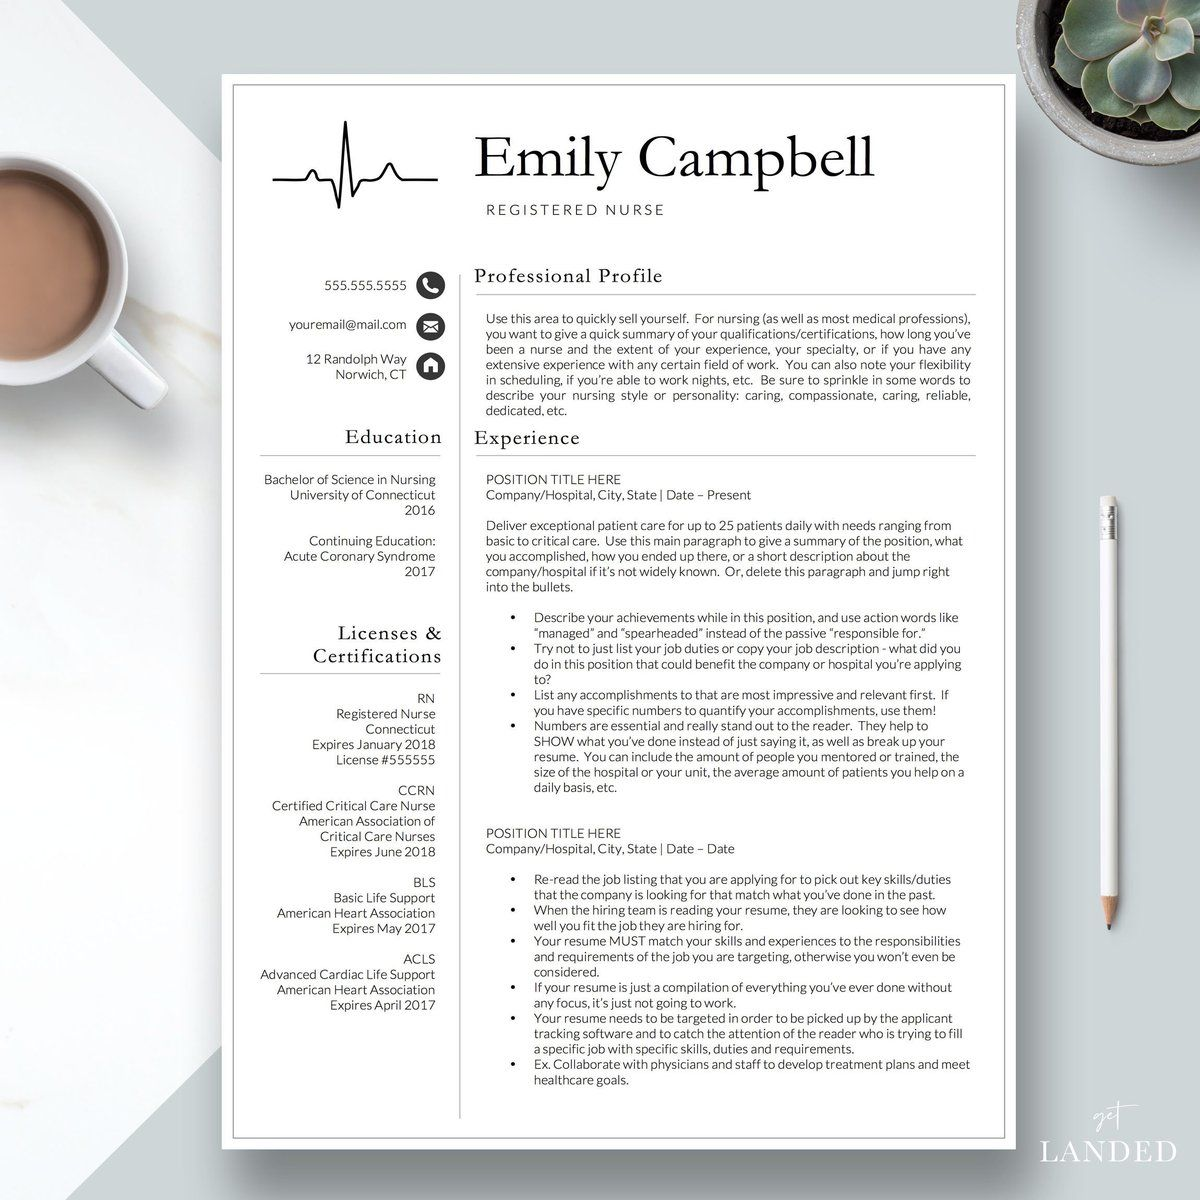 nurse resume template    cv for nursing student  nursing graduation  medical assistant